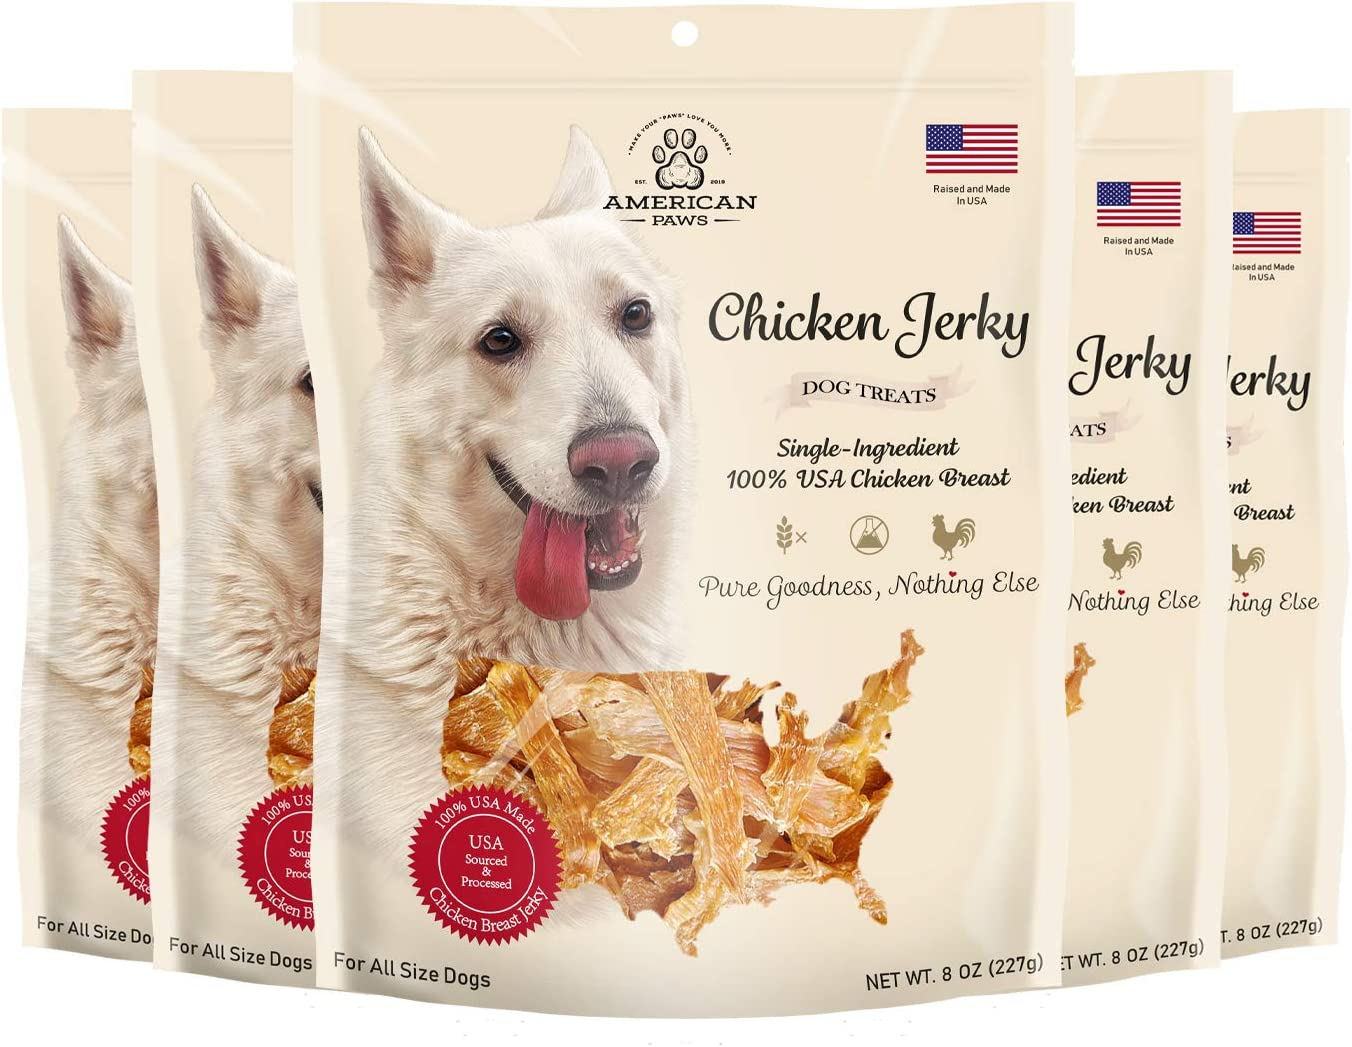 American Safety and trust Paws Chicken Jerky New popularity Dog Treats Natural in USA All Made